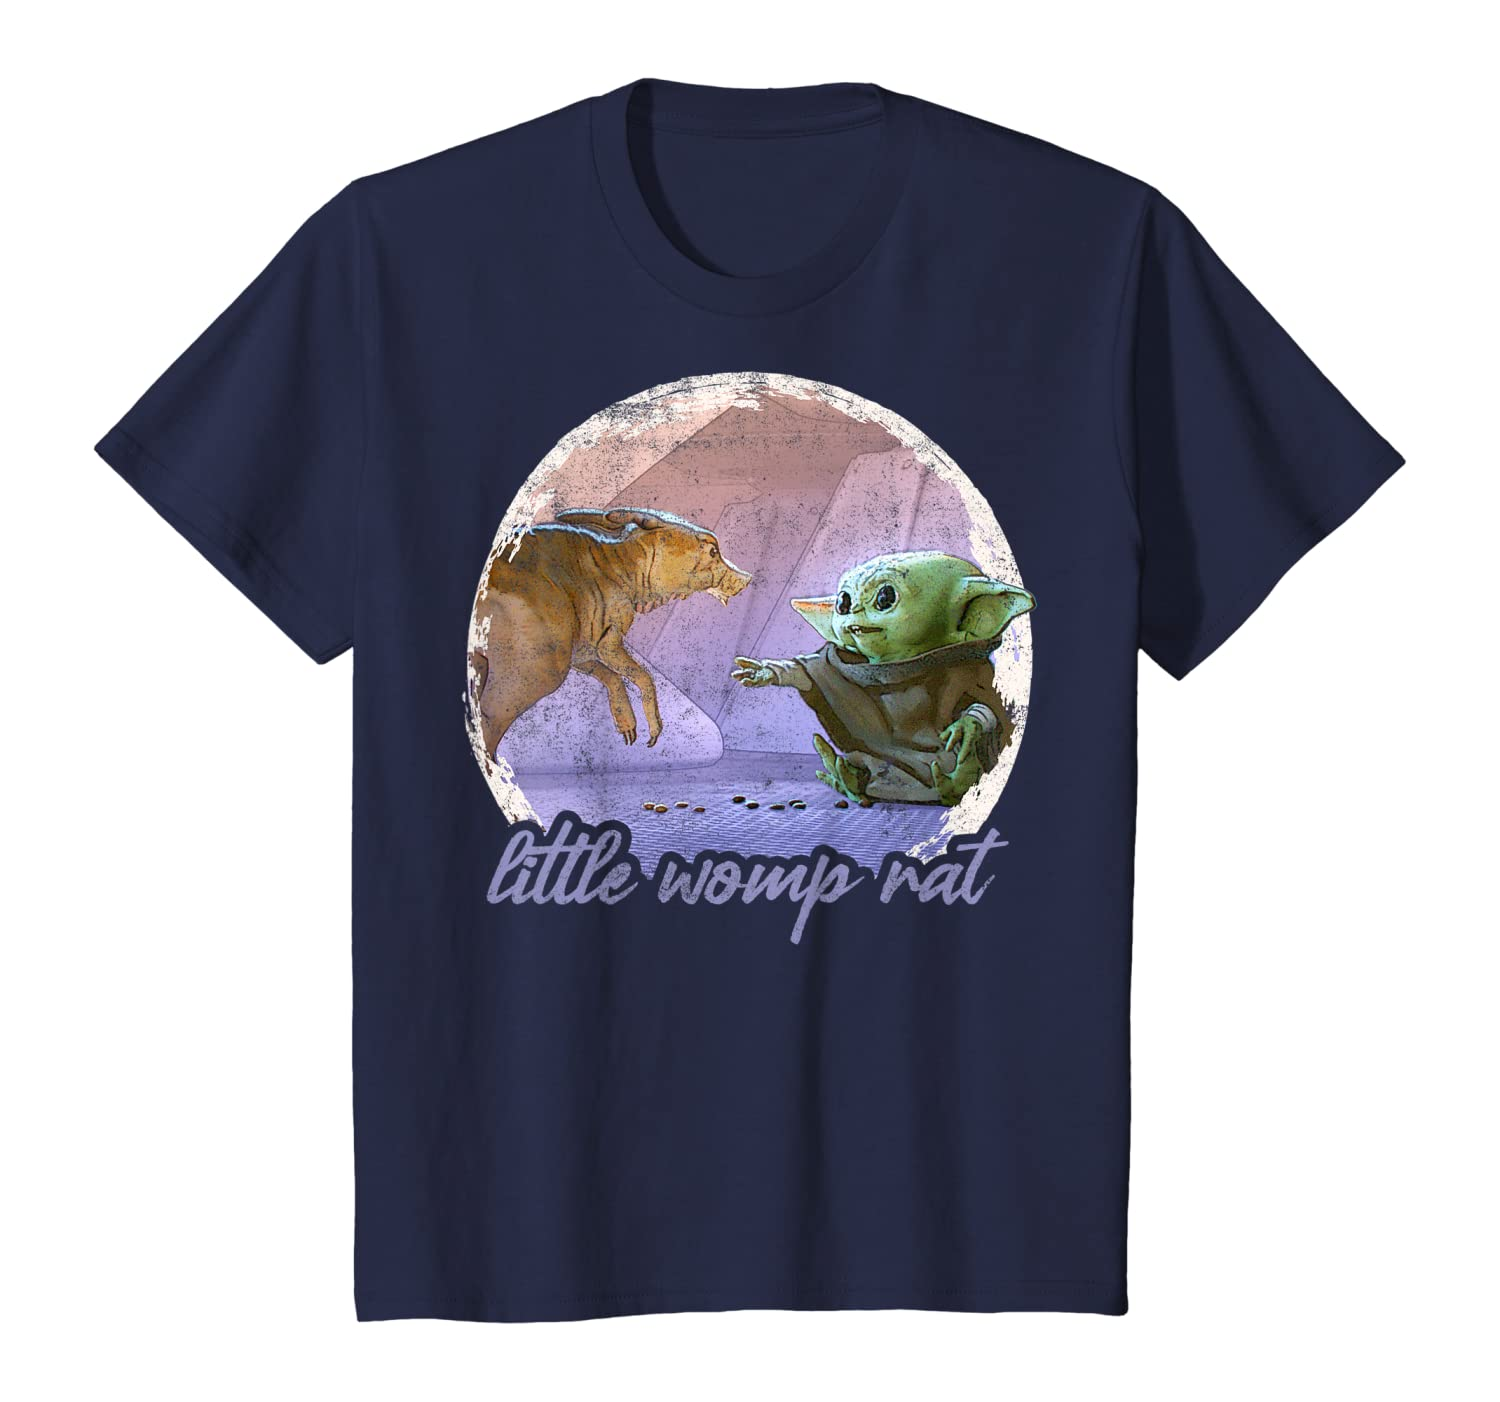 Amazon Com Star Wars The Mandalorian The Child Womp Rat Concept Art T Shirt Clothing Womp rats were creatures native to tatooine, and were considered pests by local moisture farmers who hunted them for sport. amazon com